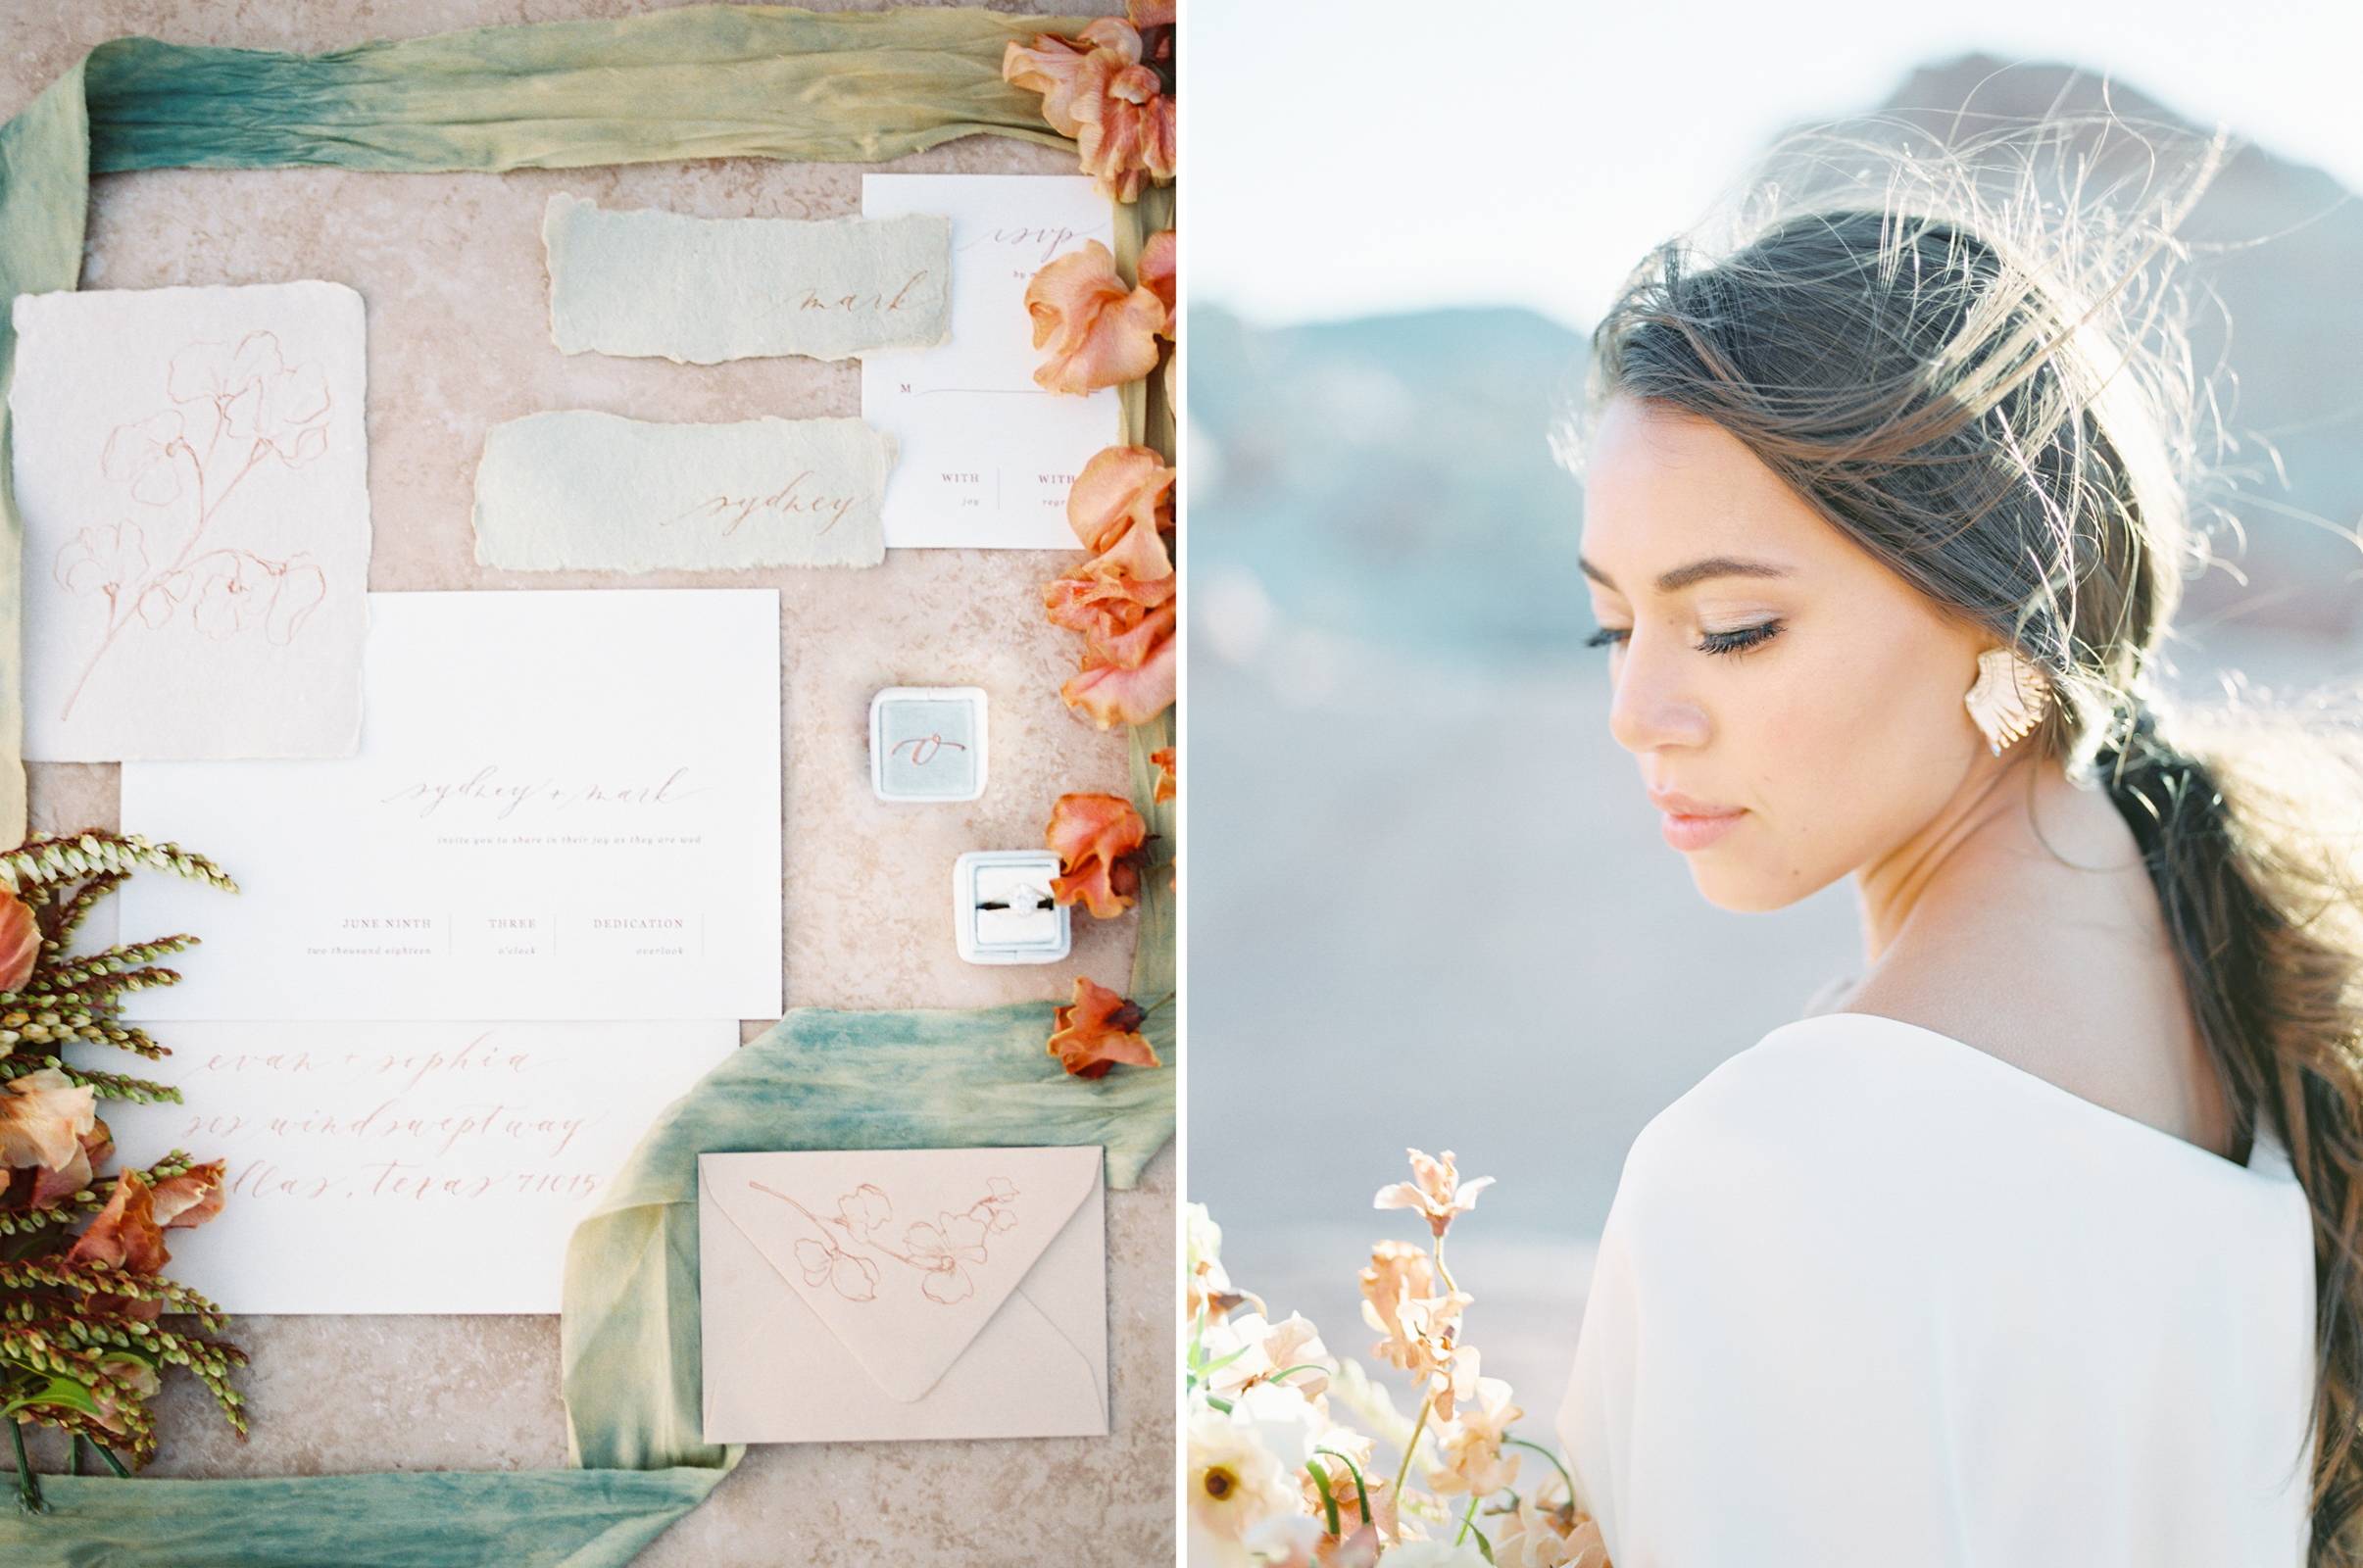 AKP_Desert_Wedding_Bridal_Shoot_Film_Fine_Art_Wedding_Photographer_Los_Angeles-1.jpg